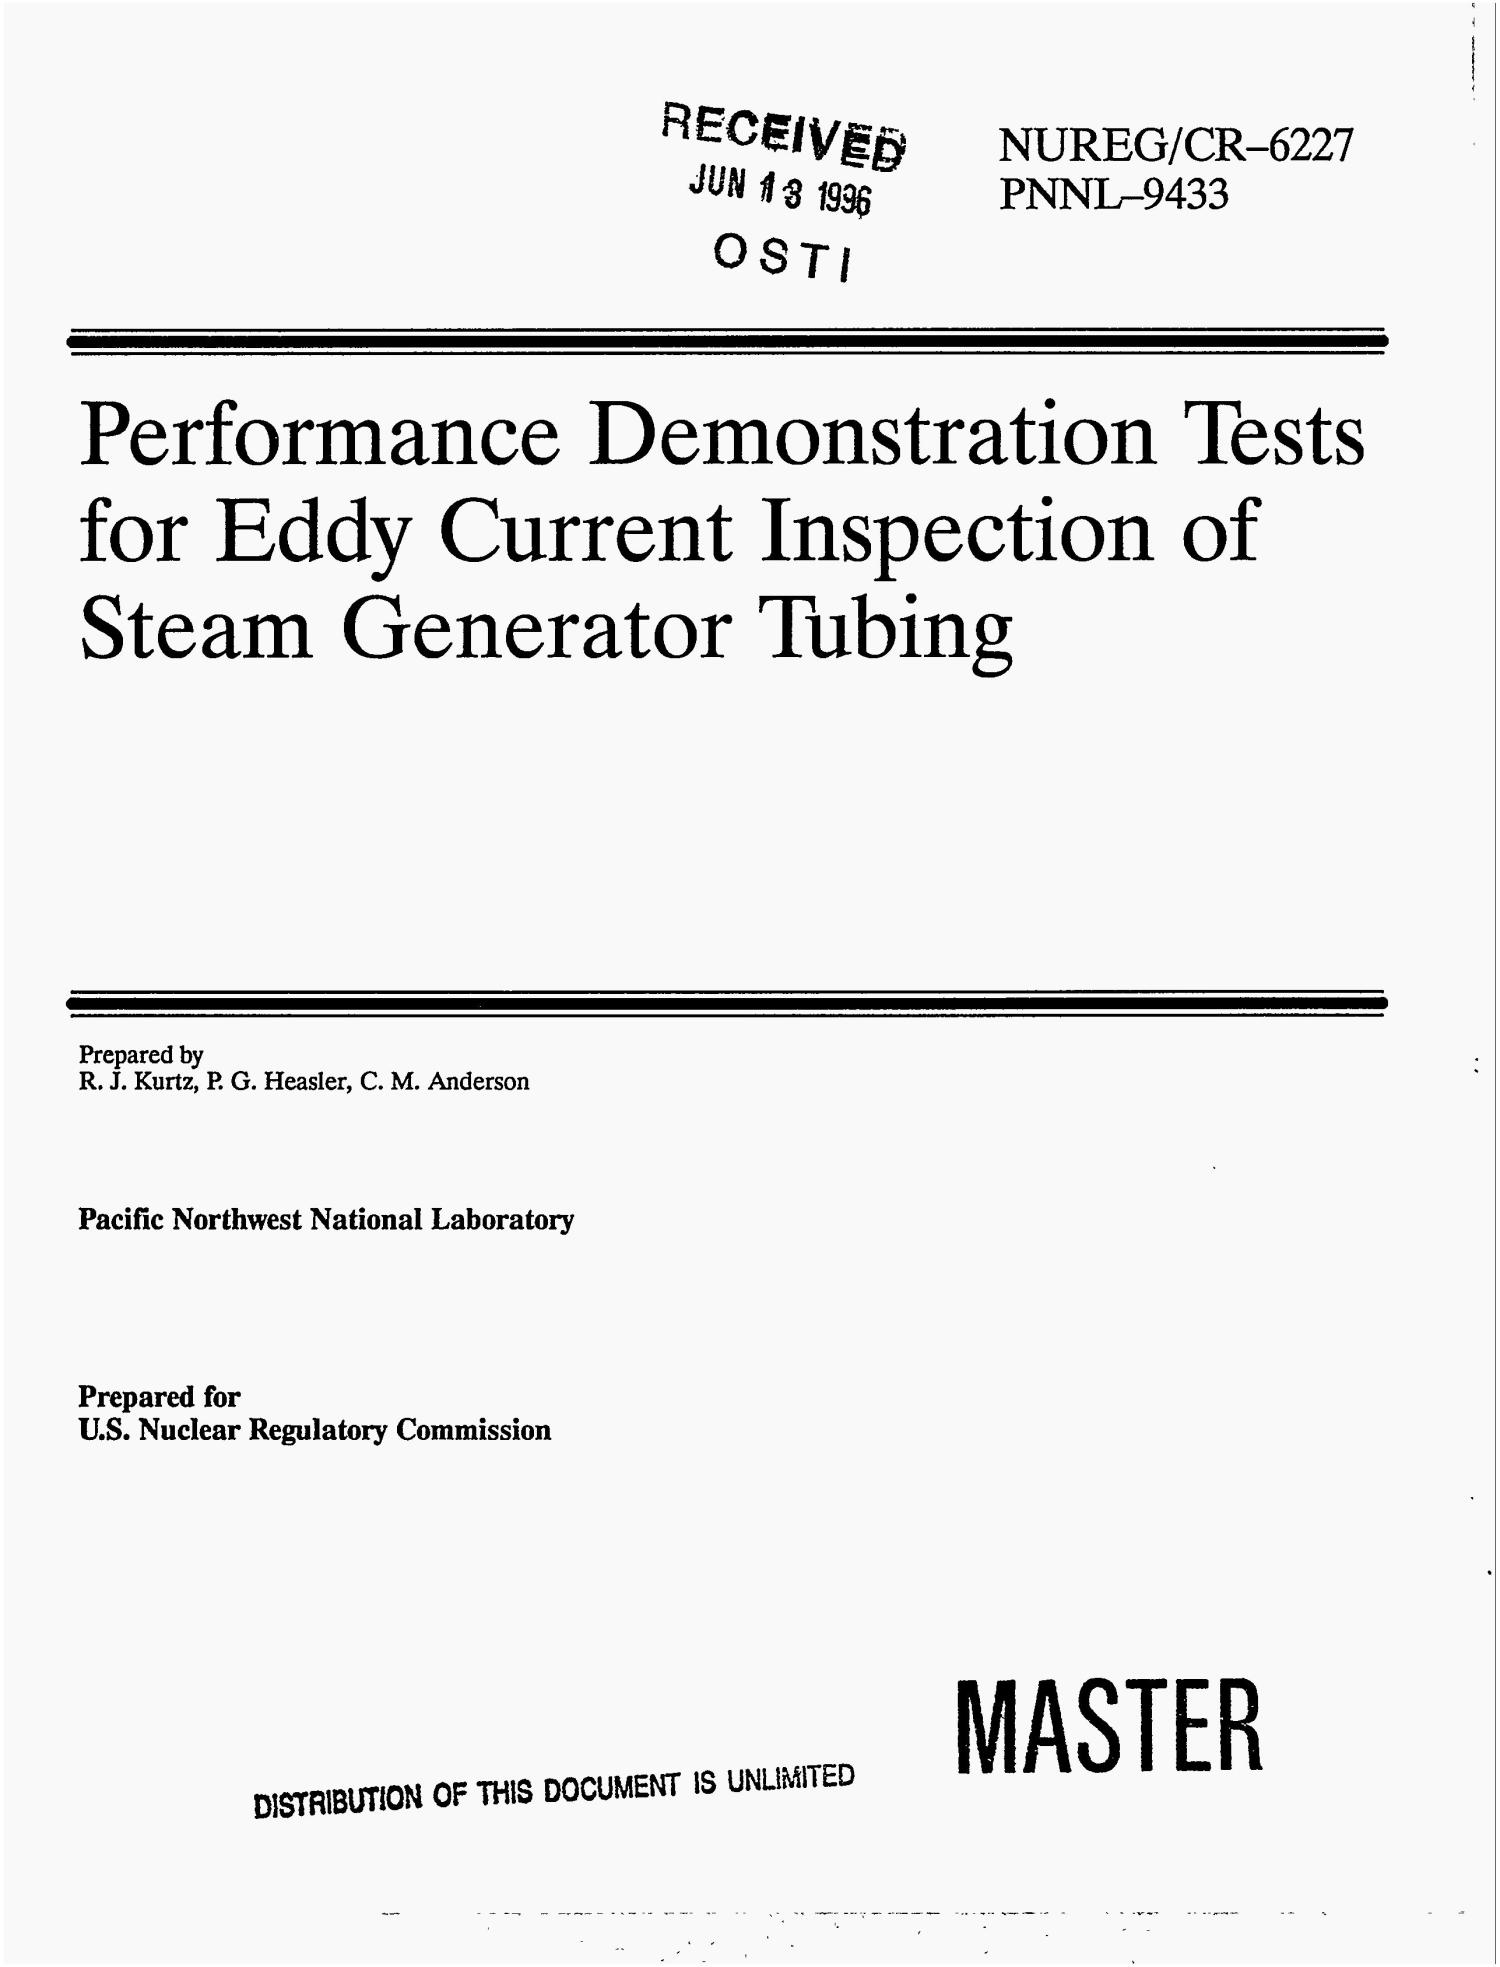 Performance demonstration tests for eddy current inspection of